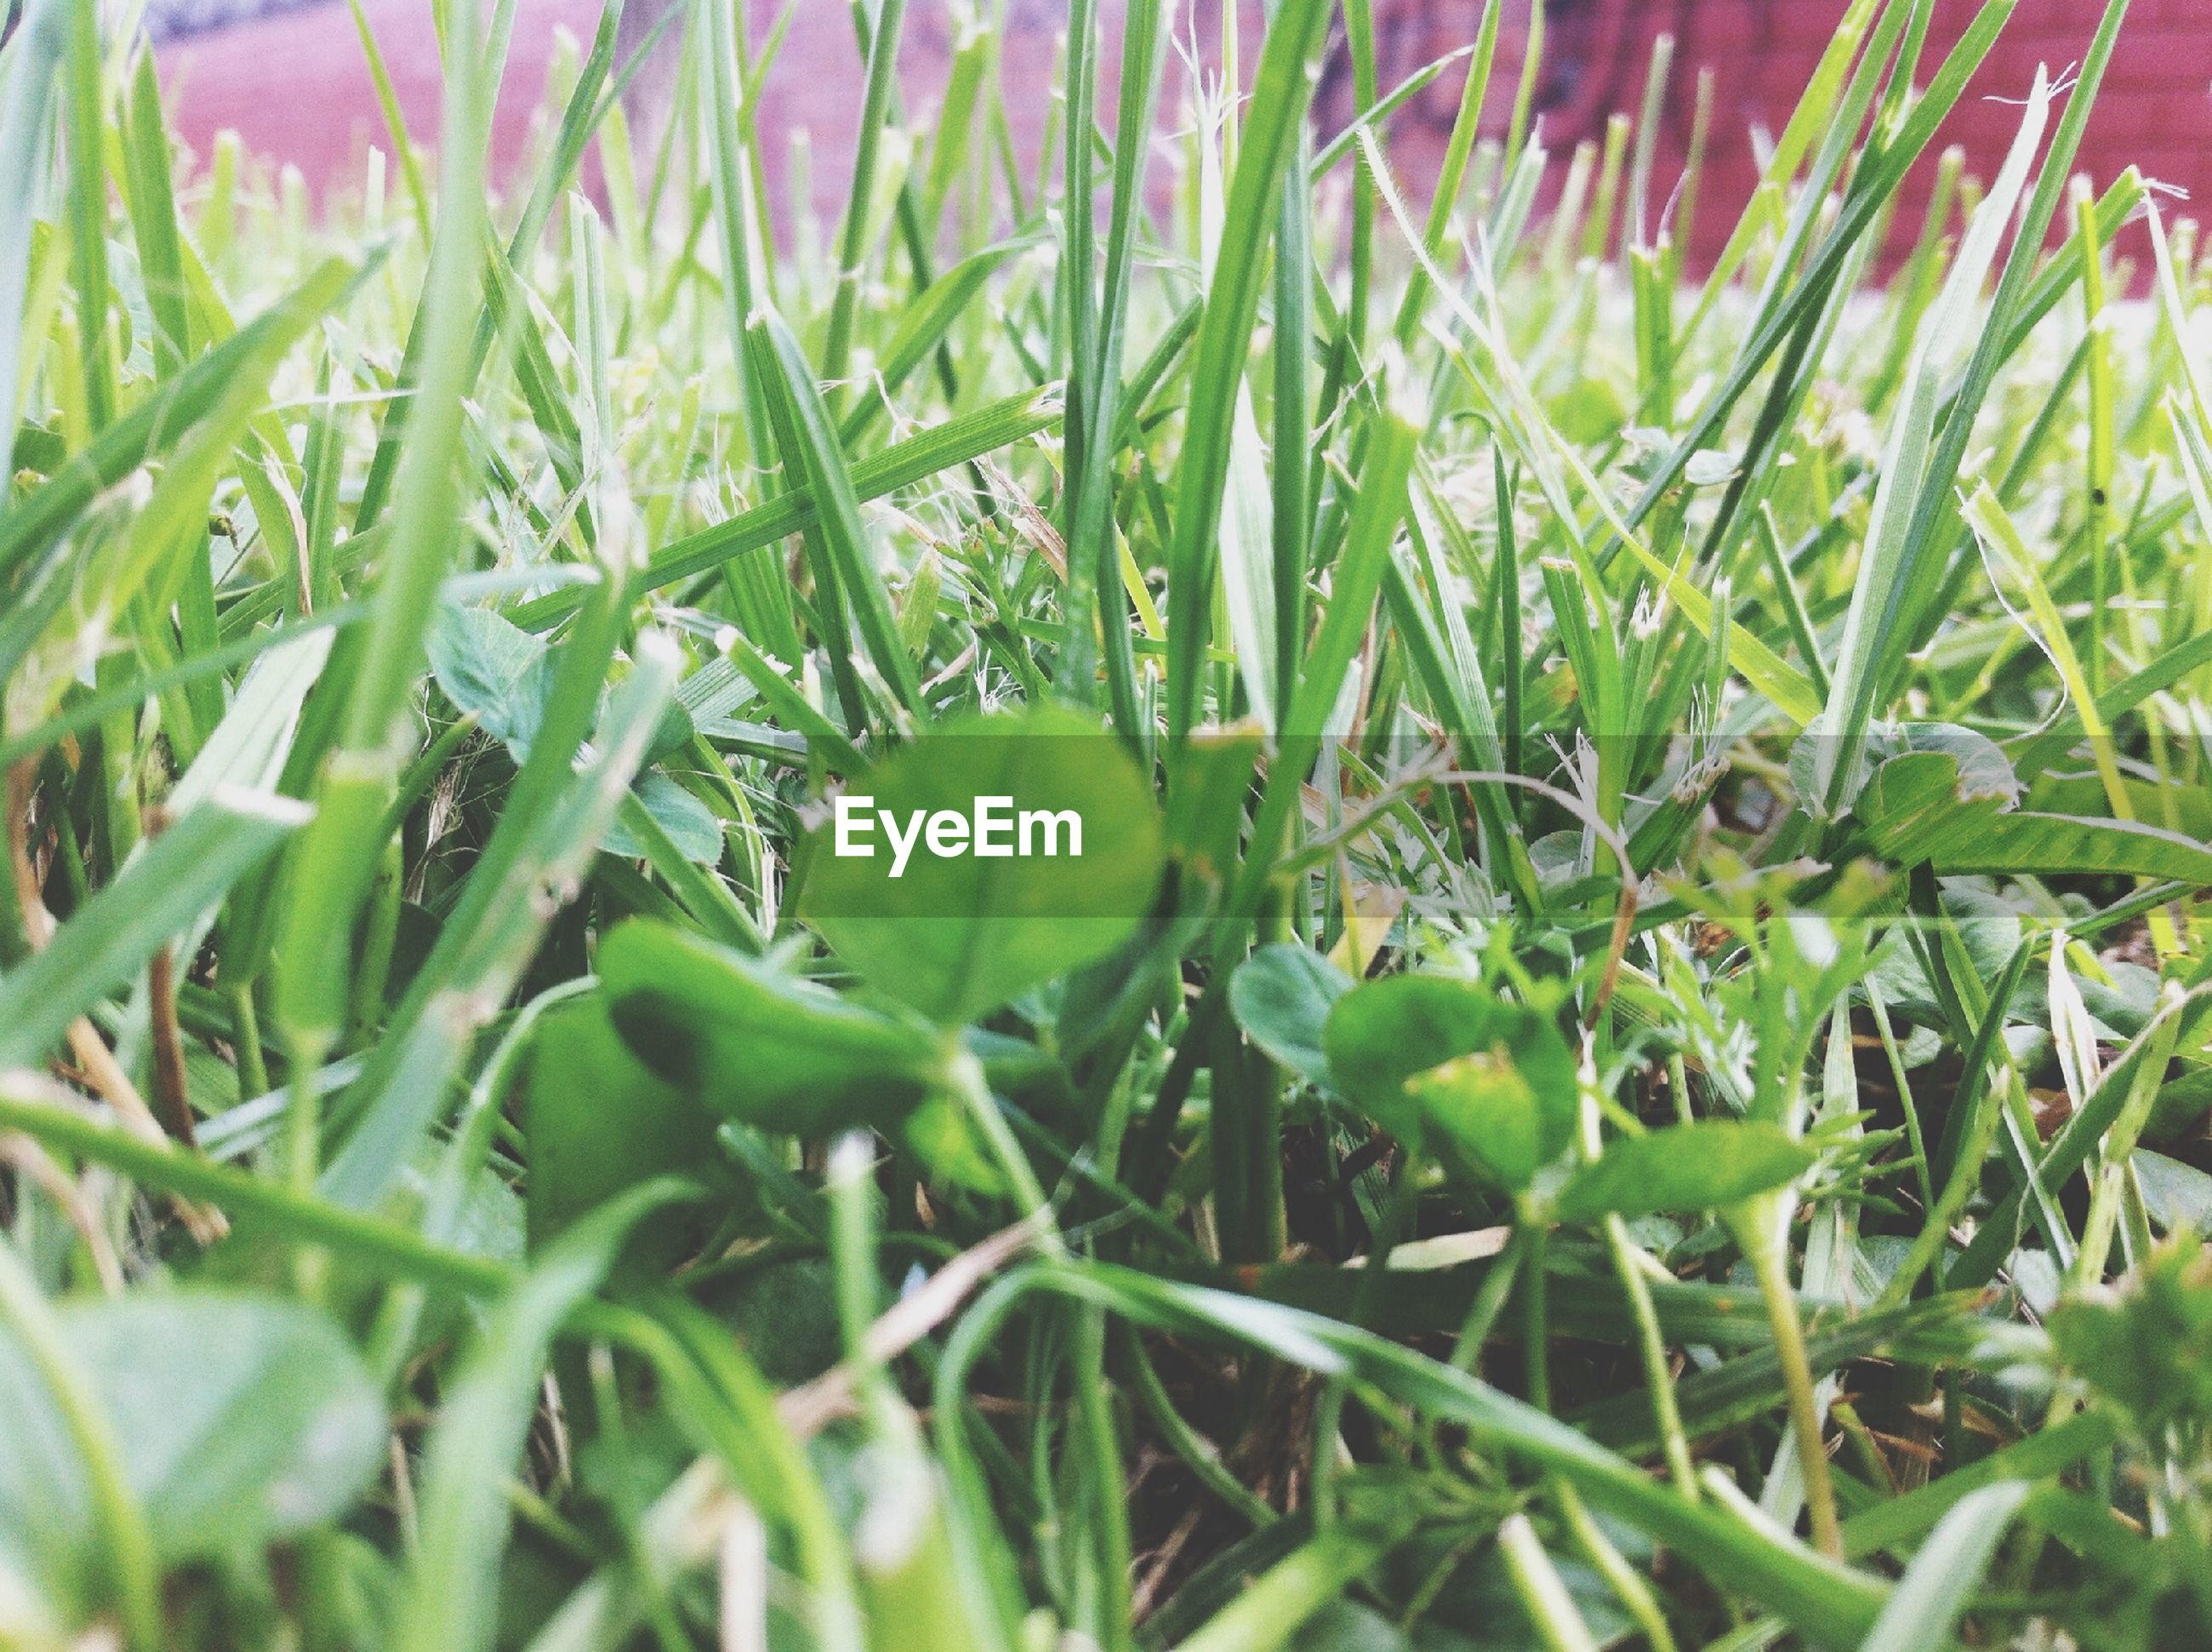 growth, green color, plant, leaf, nature, freshness, field, beauty in nature, grass, close-up, selective focus, green, growing, day, no people, outdoors, blade of grass, tranquility, lush foliage, focus on foreground